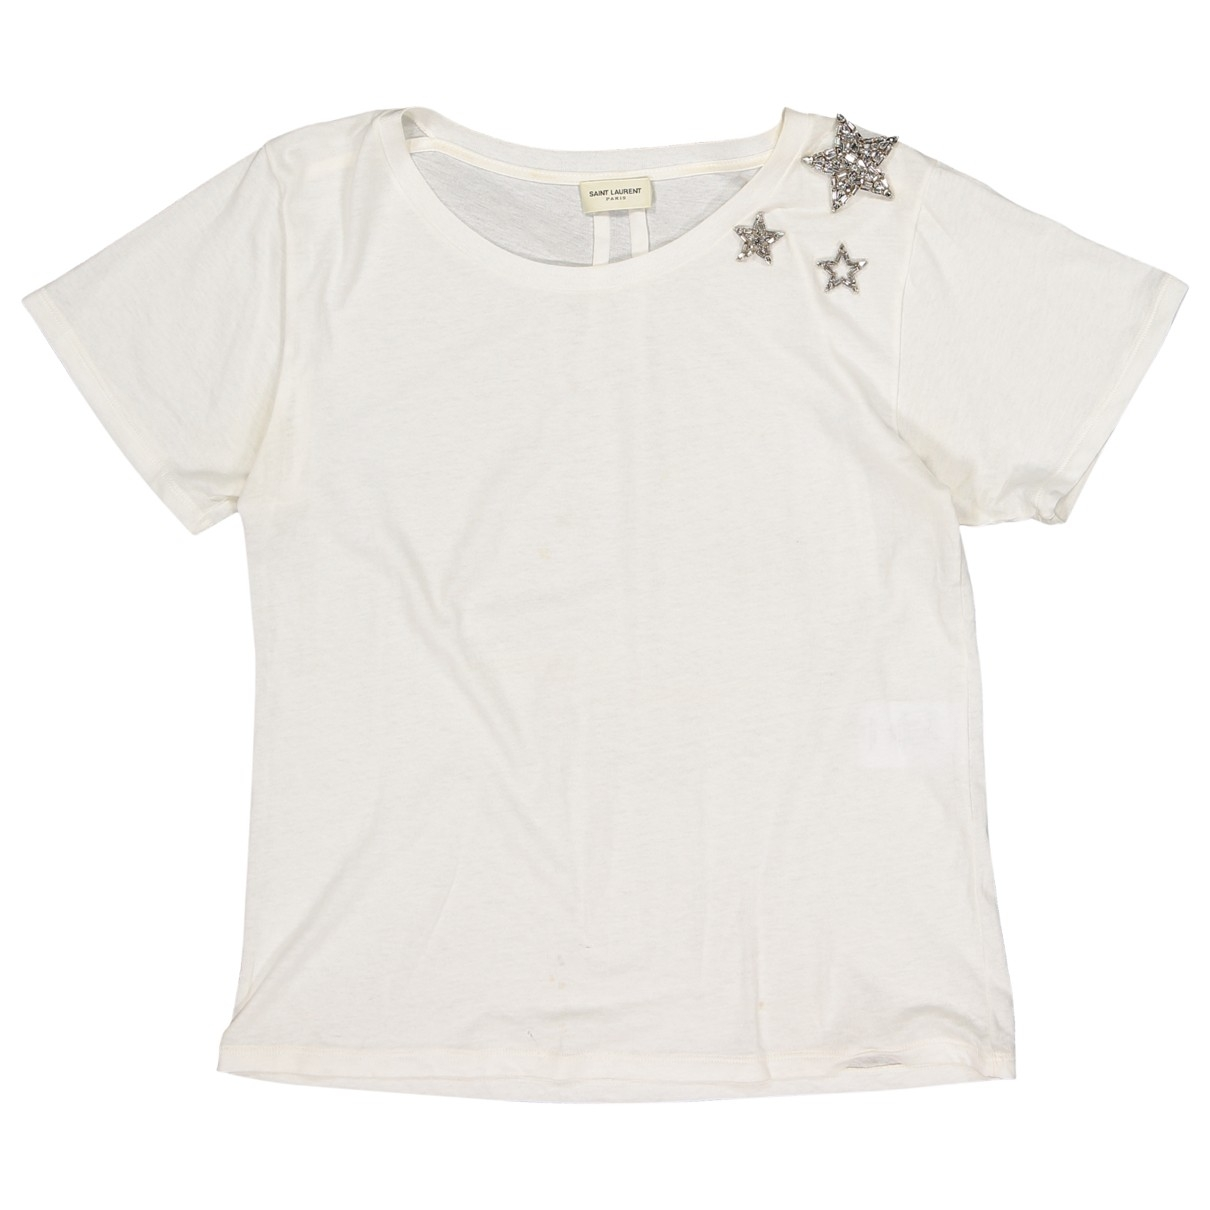 Saint Laurent \N Ecru Cotton  top for Women M International